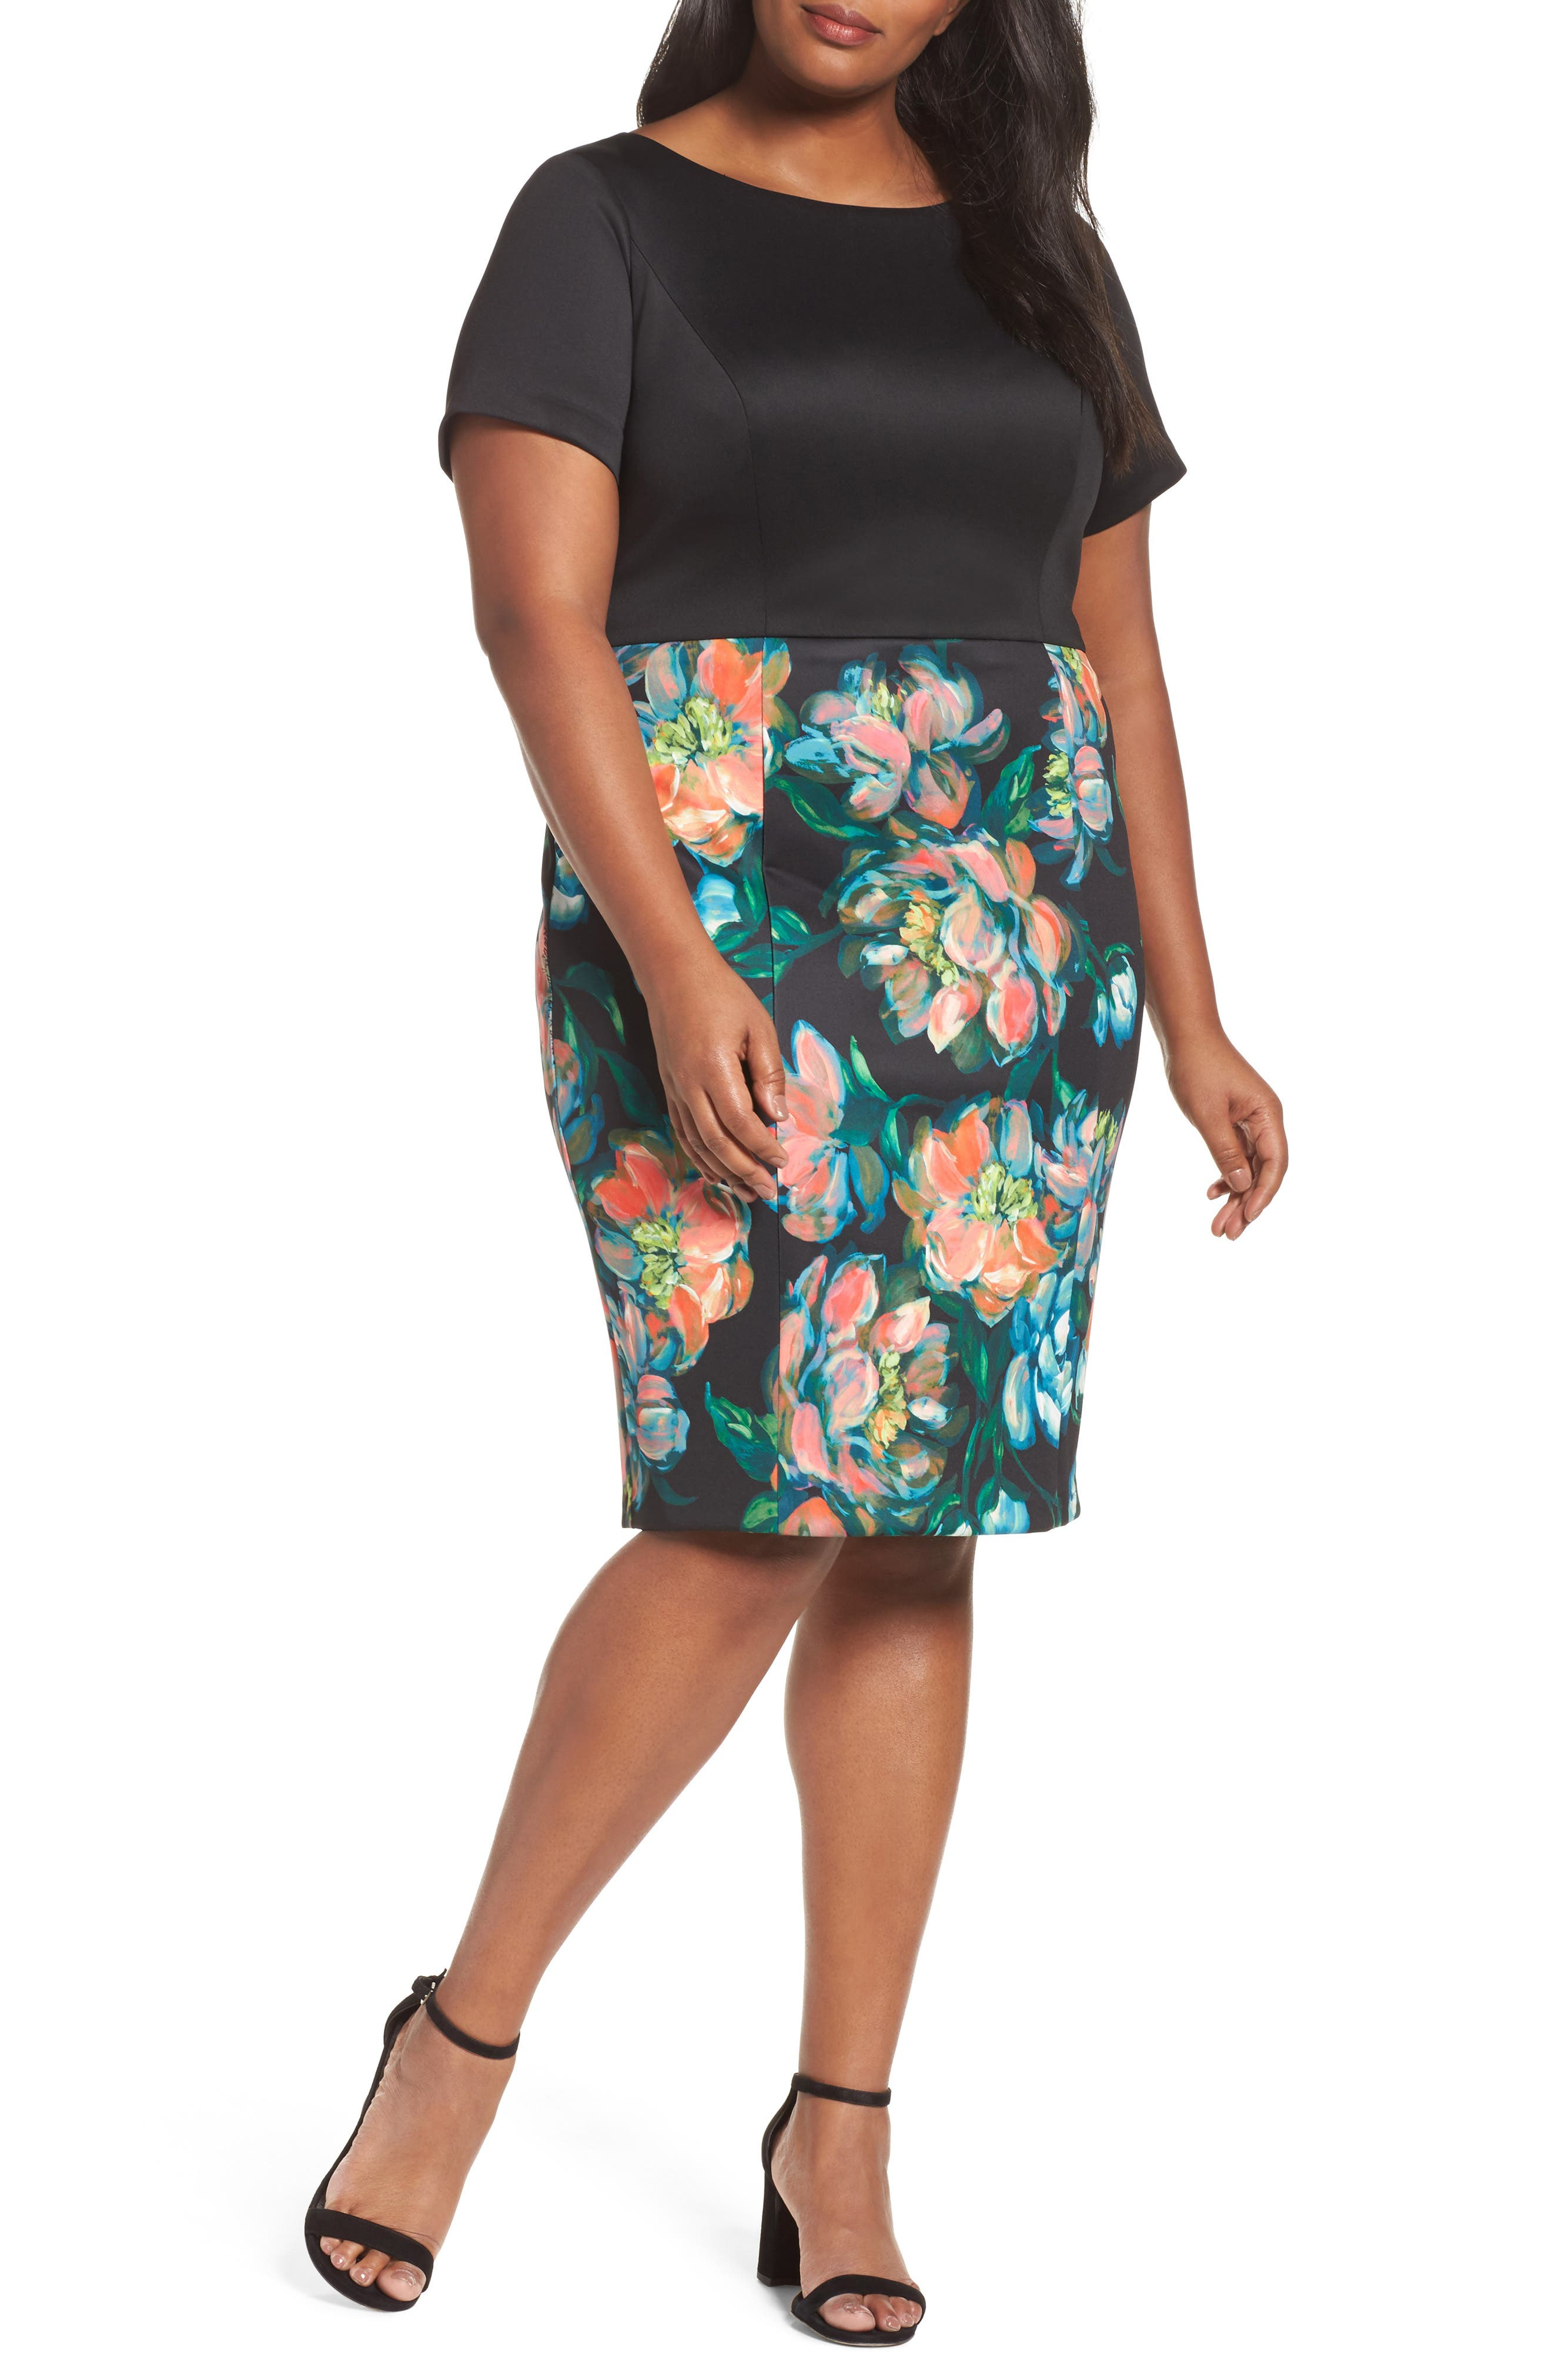 Alternate Image 1 Selected - Adrianna Papell Floral Print Sheath Dress (Plus Size)